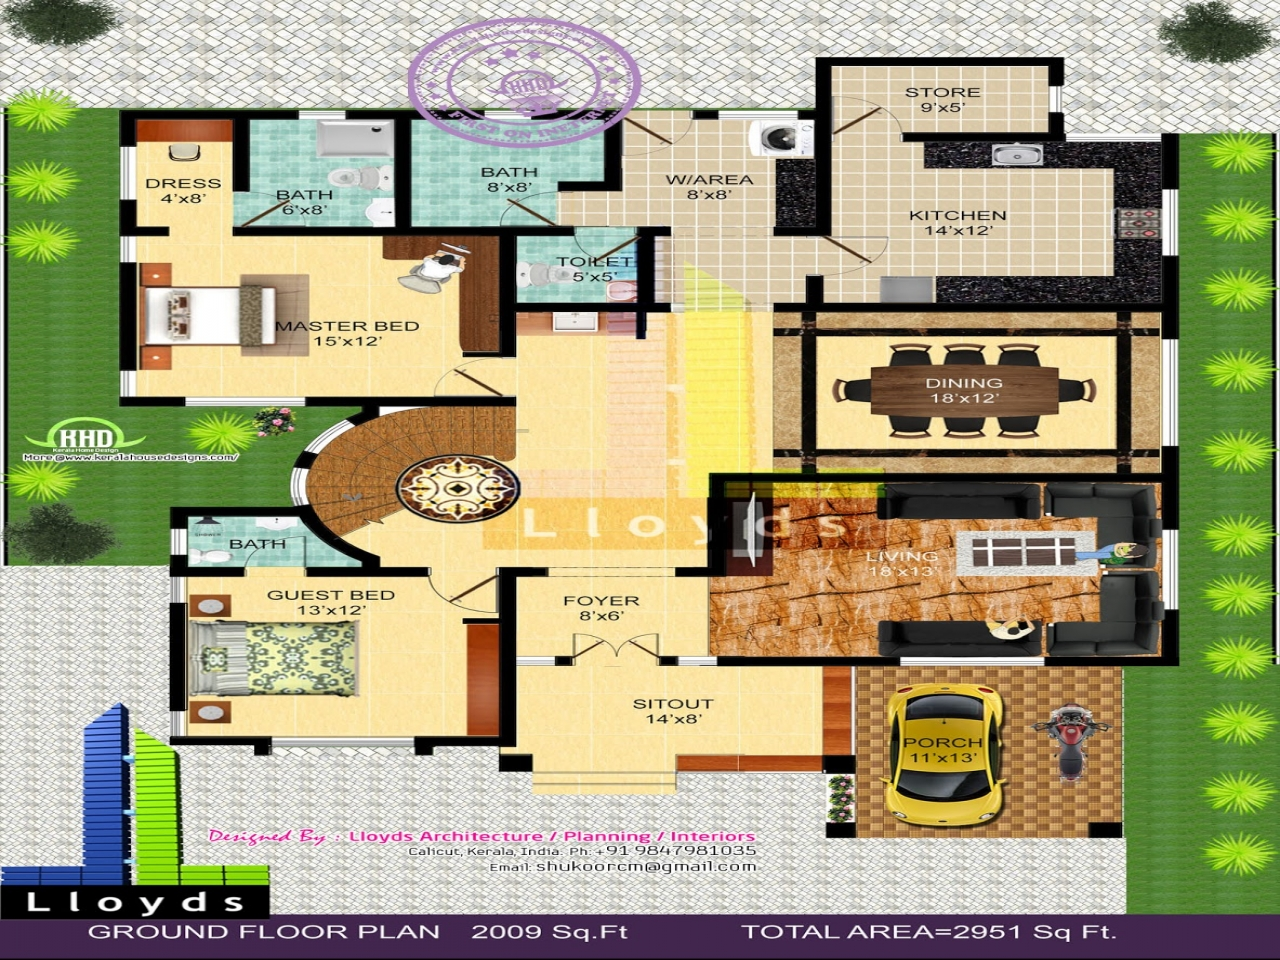 bedroom bungalow floor plan and 3d view kerala home design and floor small bungalow house plans. Black Bedroom Furniture Sets. Home Design Ideas